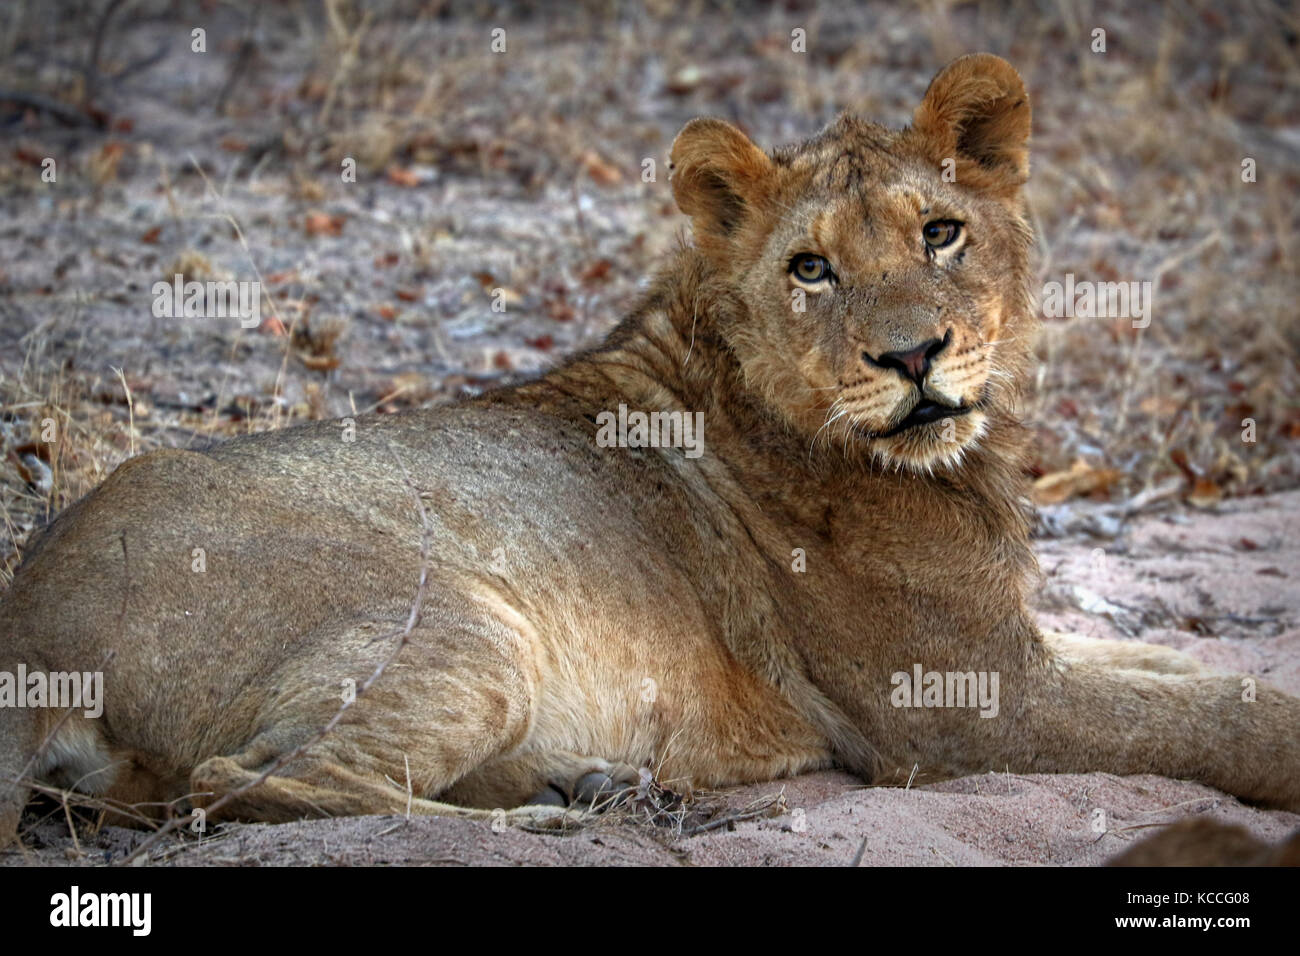 Close up of lion in the Kruger National Park, South Africa - Stock Image